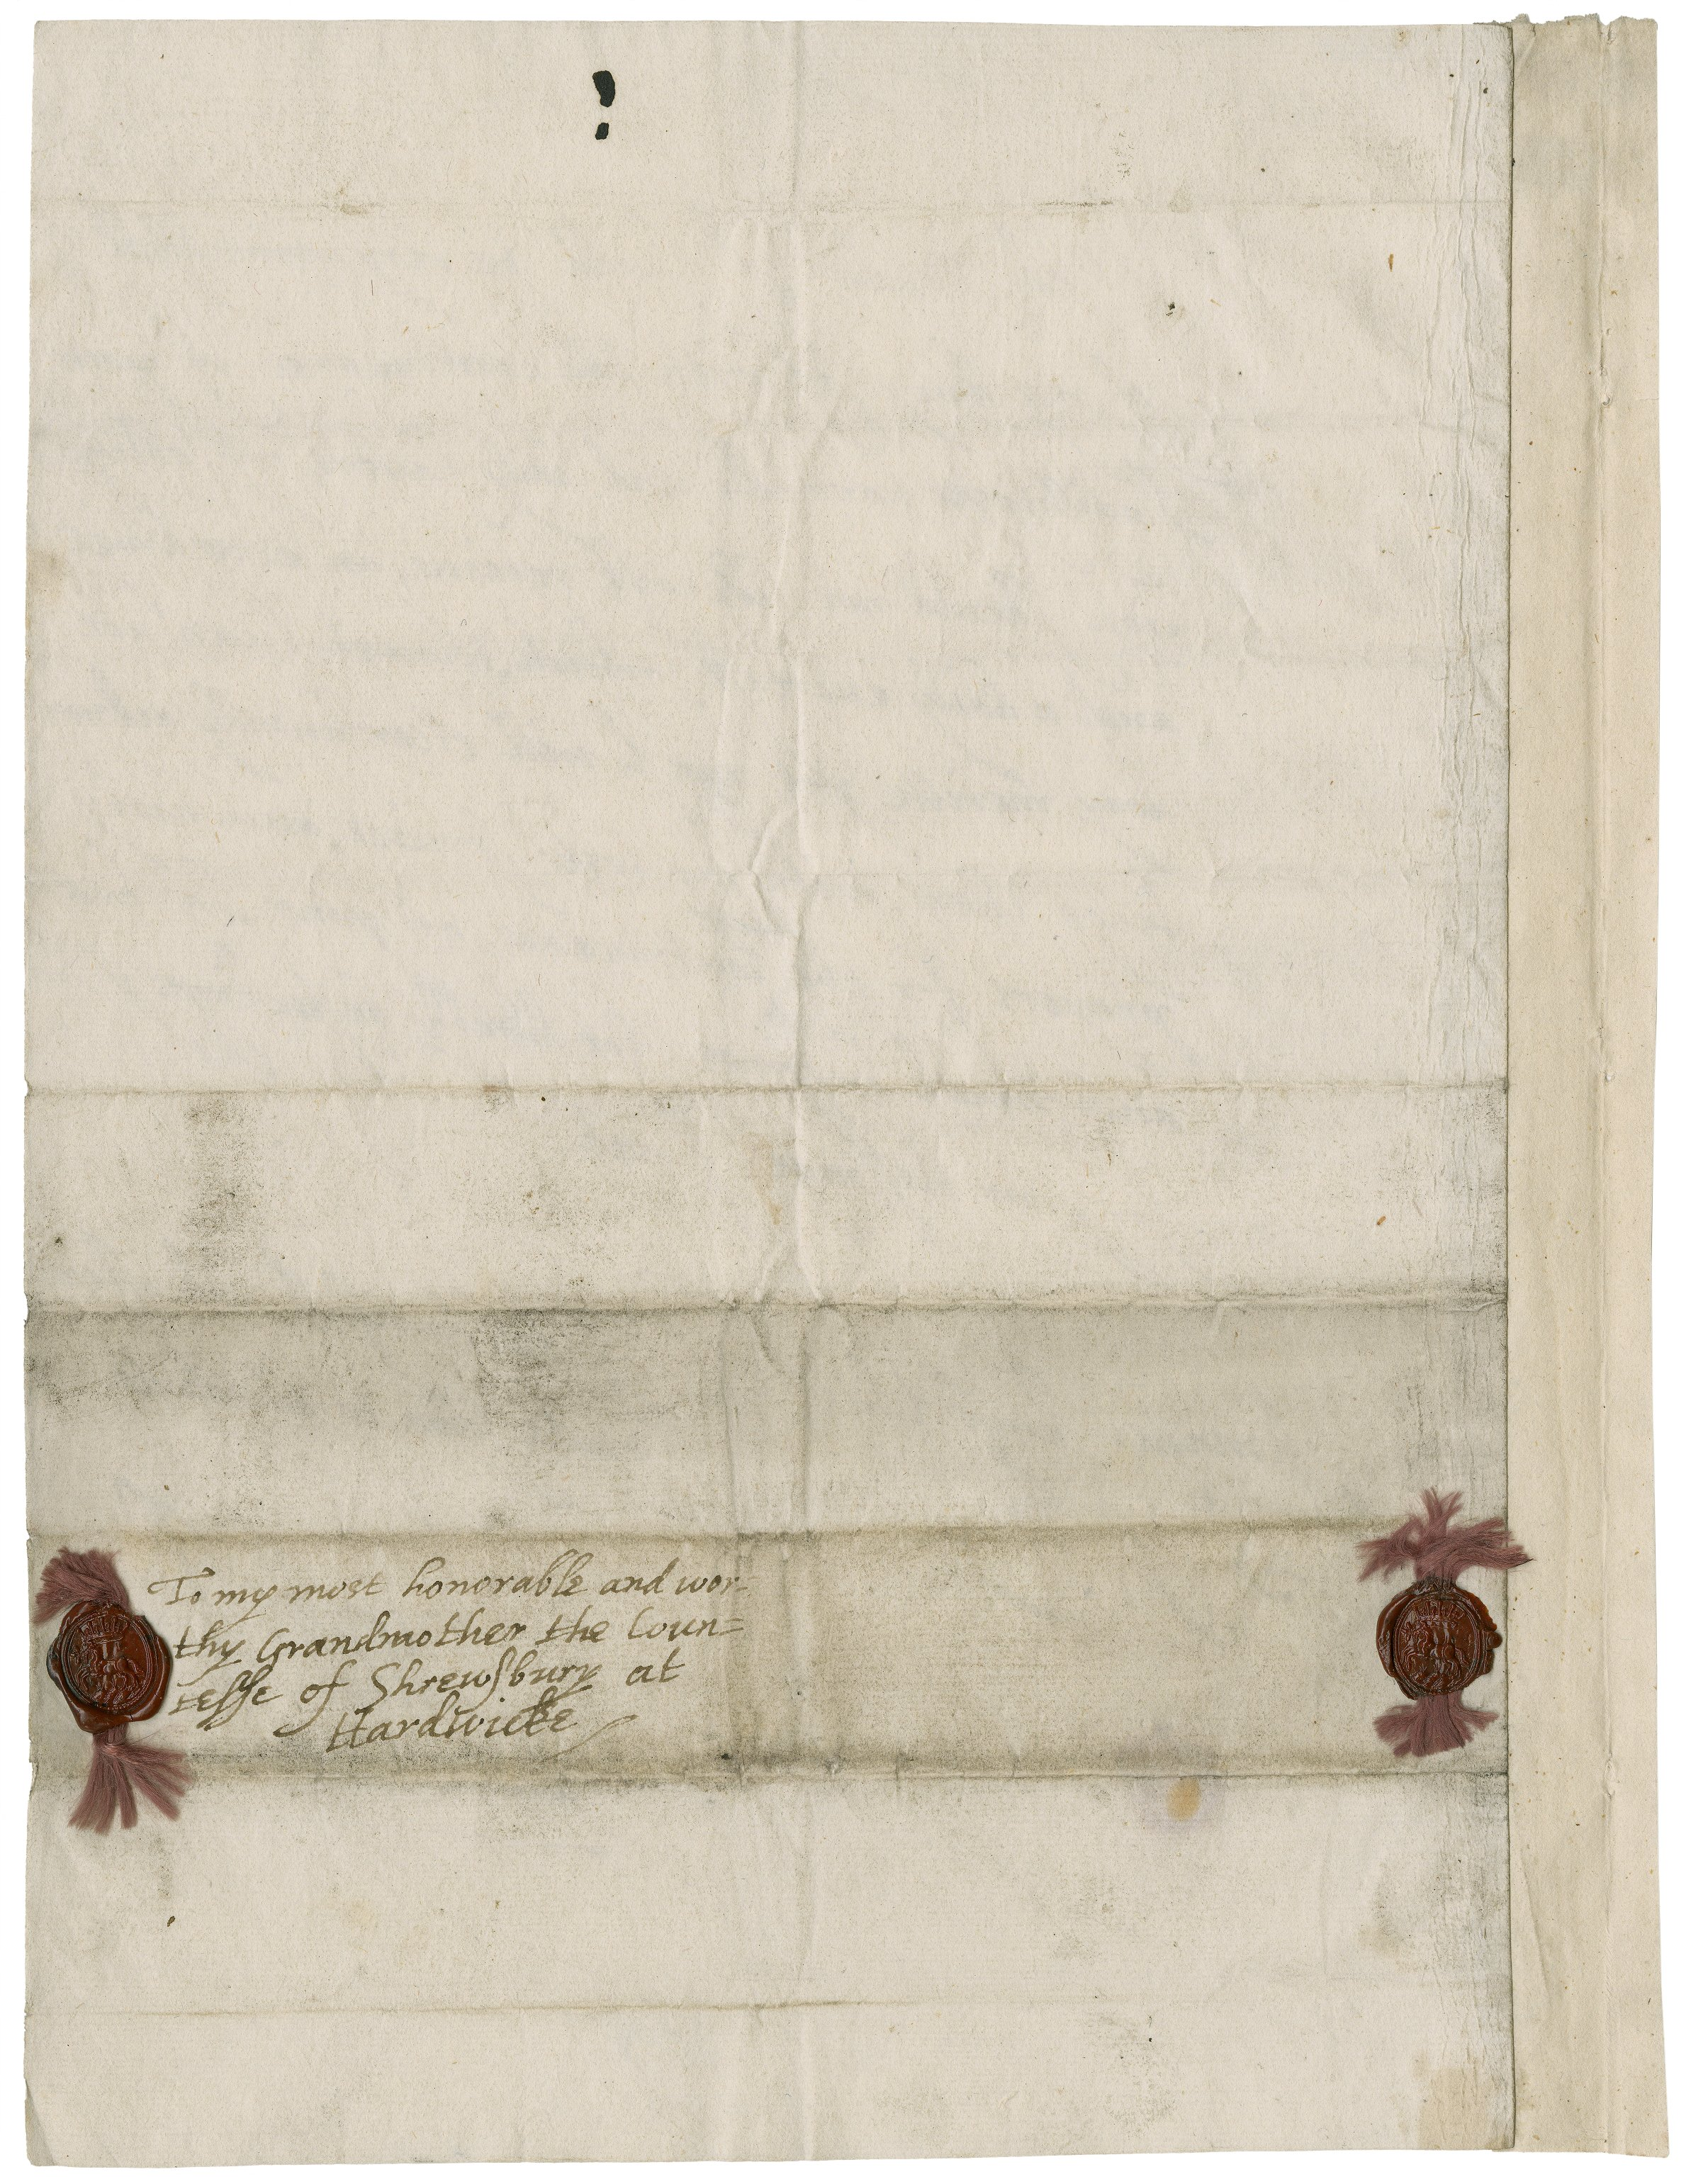 Address leaf of letter from Thomas Howard, earl of Arundel to Elizabeth Talbot, countess of Shrewsbury, May 25, 1607. Folger MS X.d.428 (1).